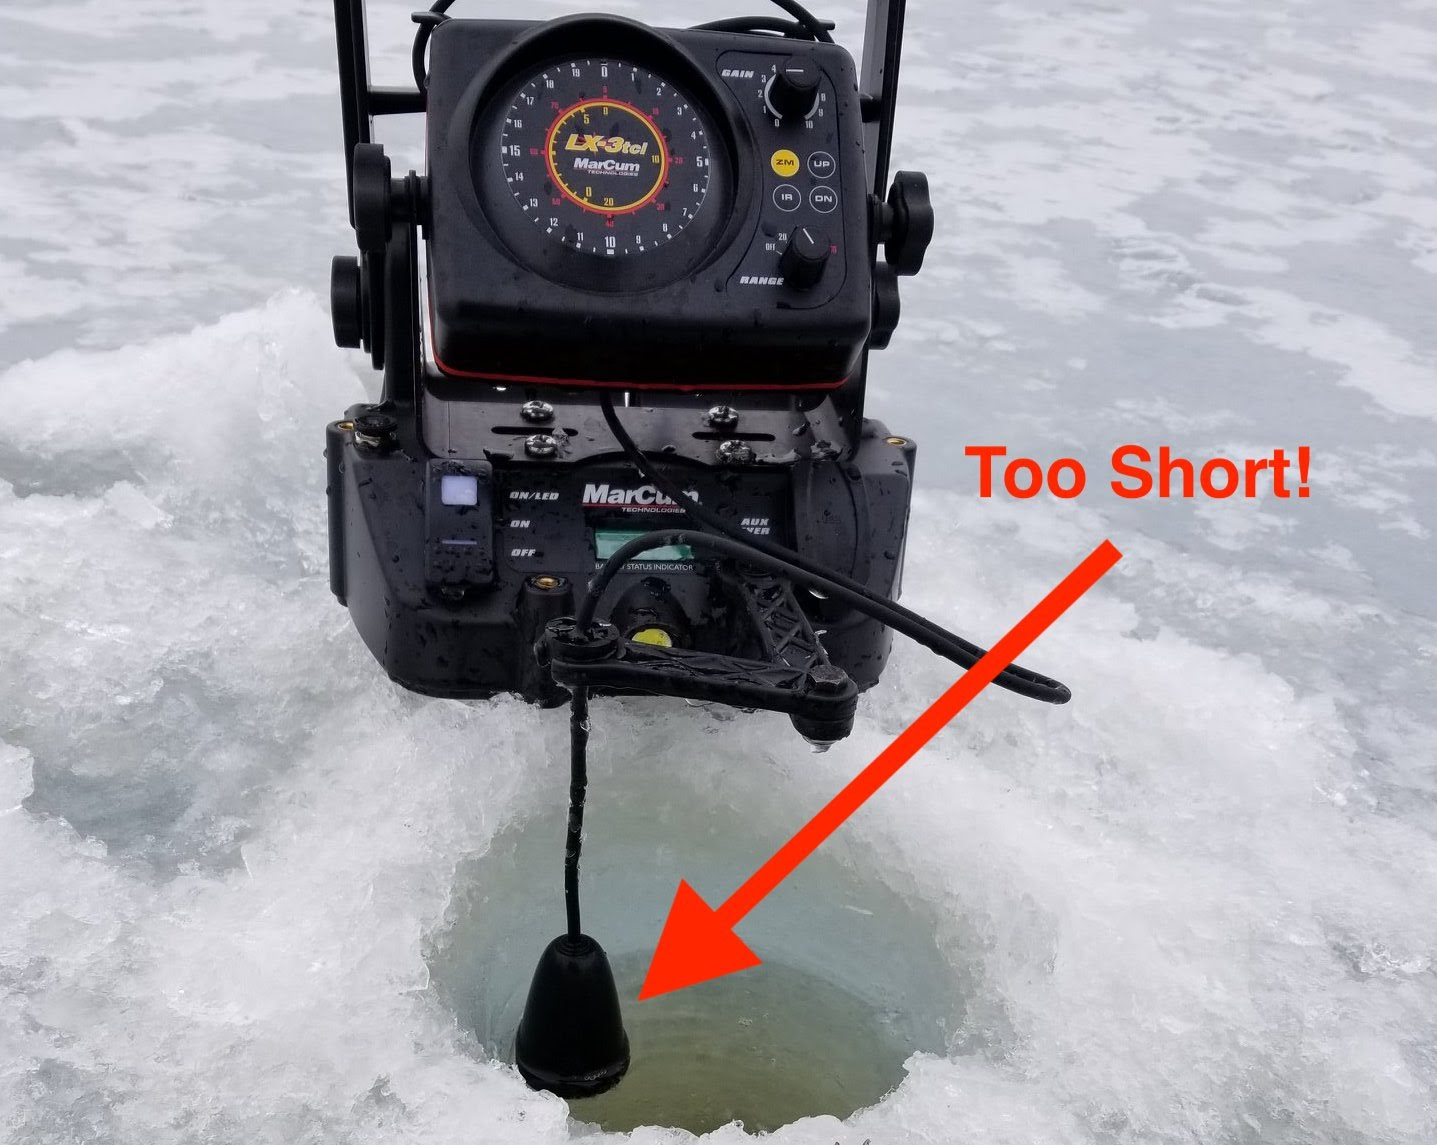 Don't set your transducer length too short